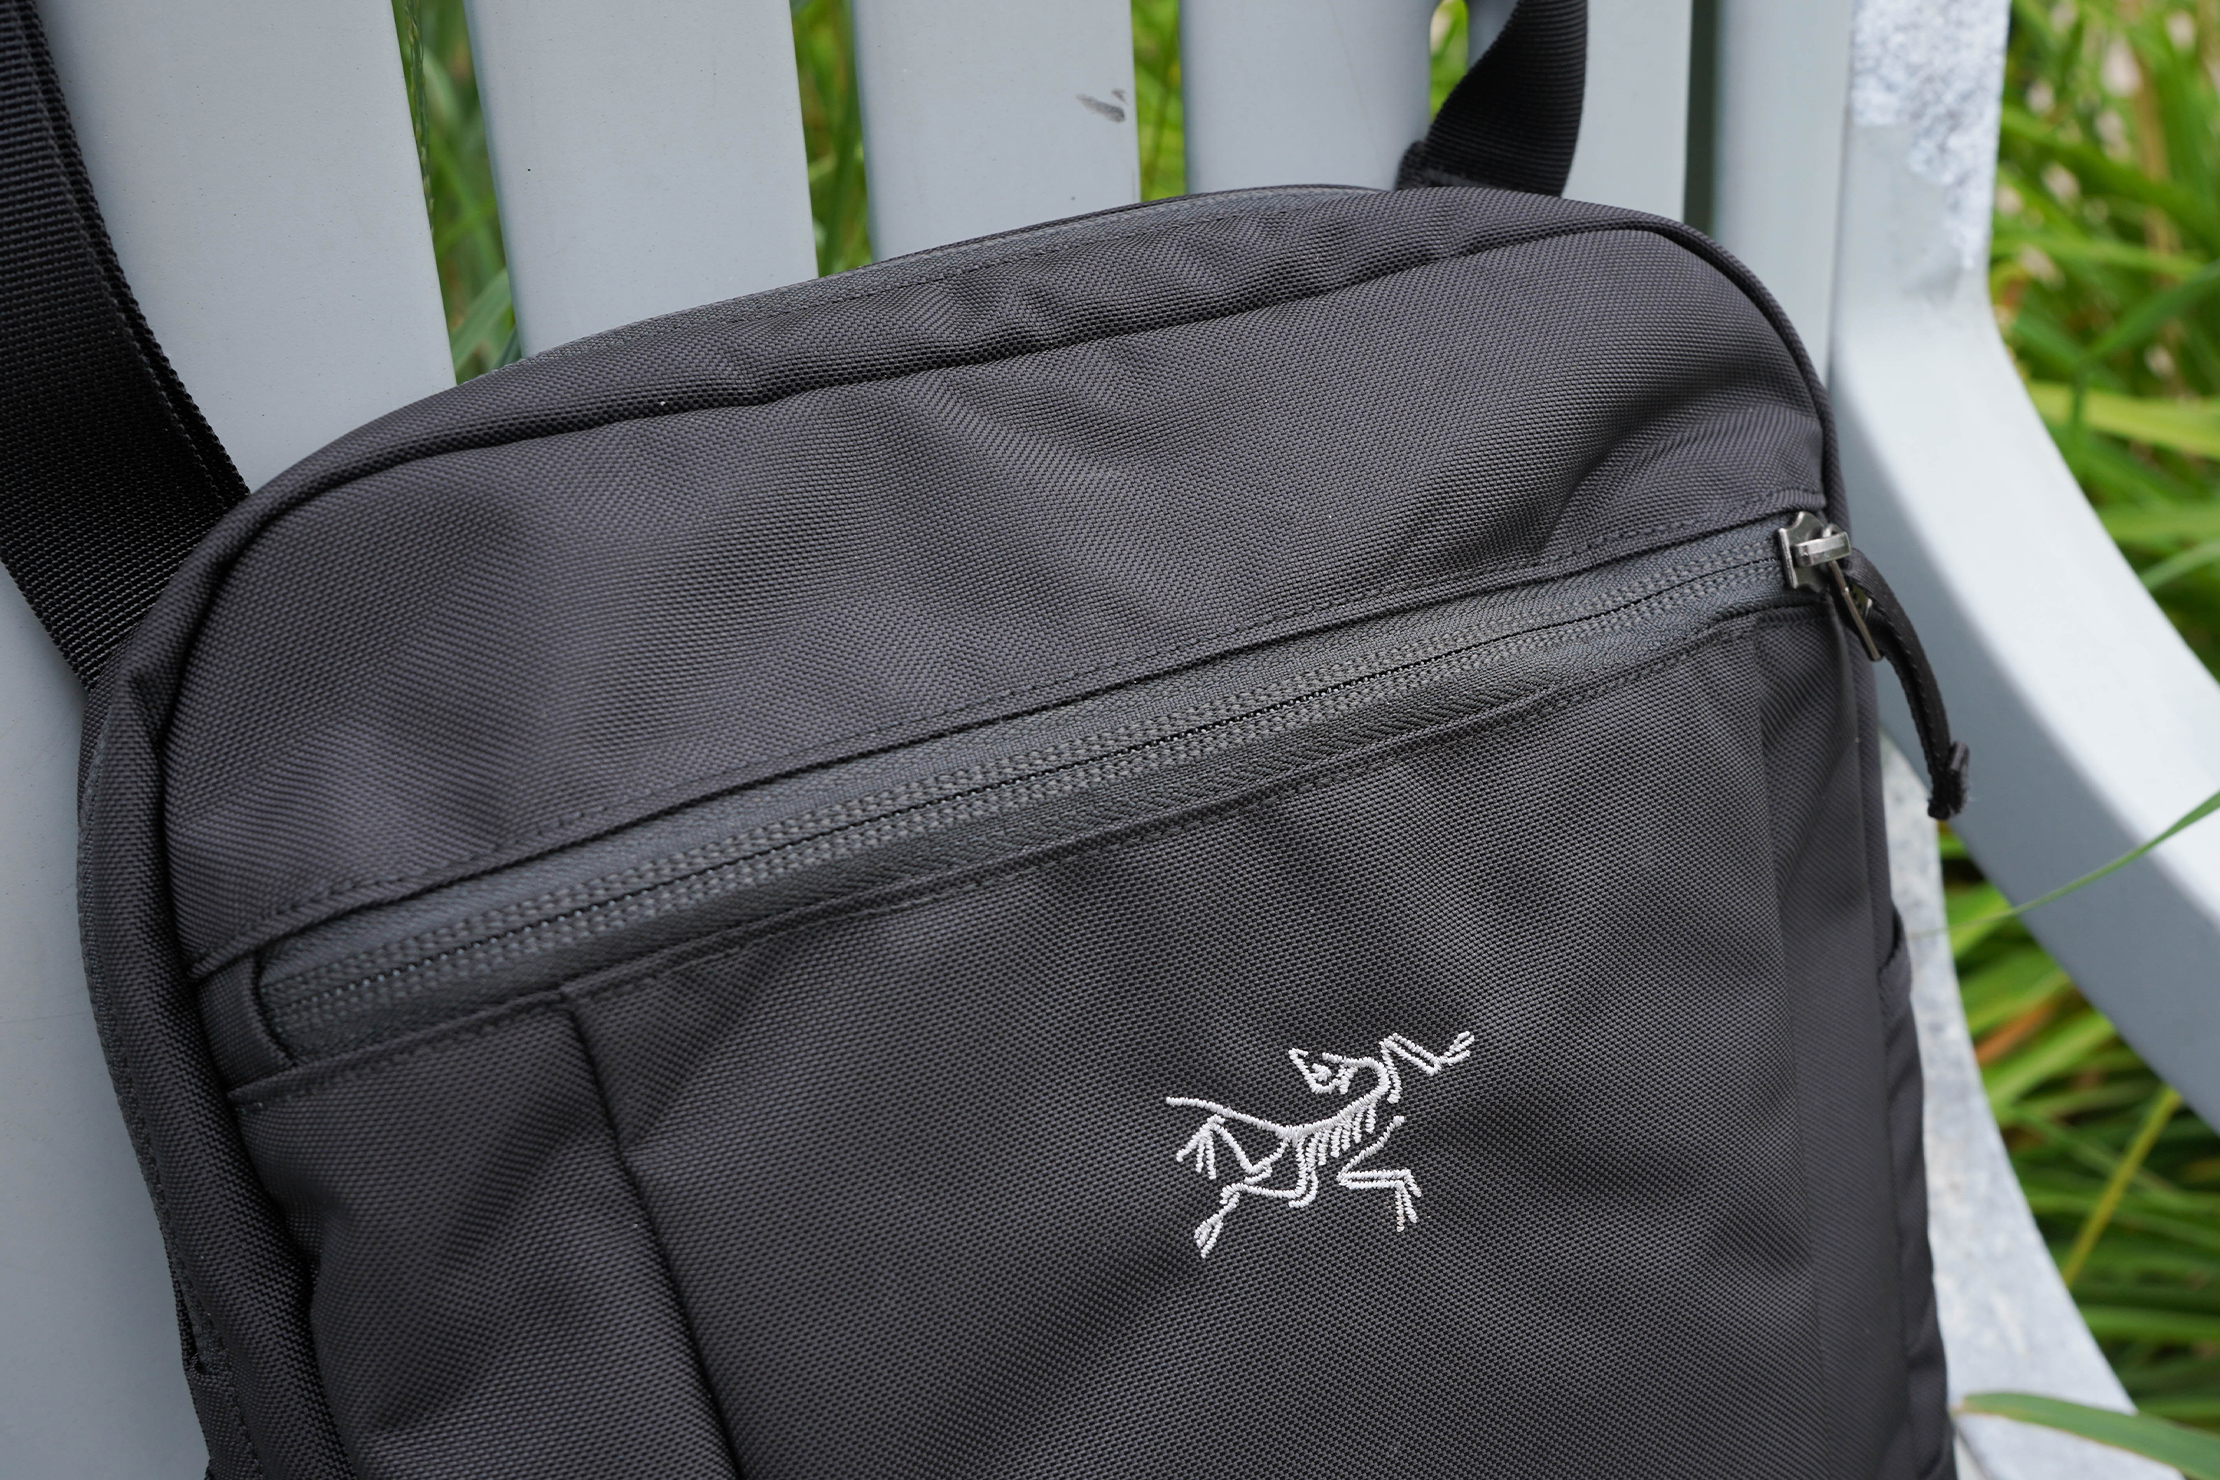 Reverse Coil Zipper on the Arc'teryx Slingblade 4 Shoulder Bag